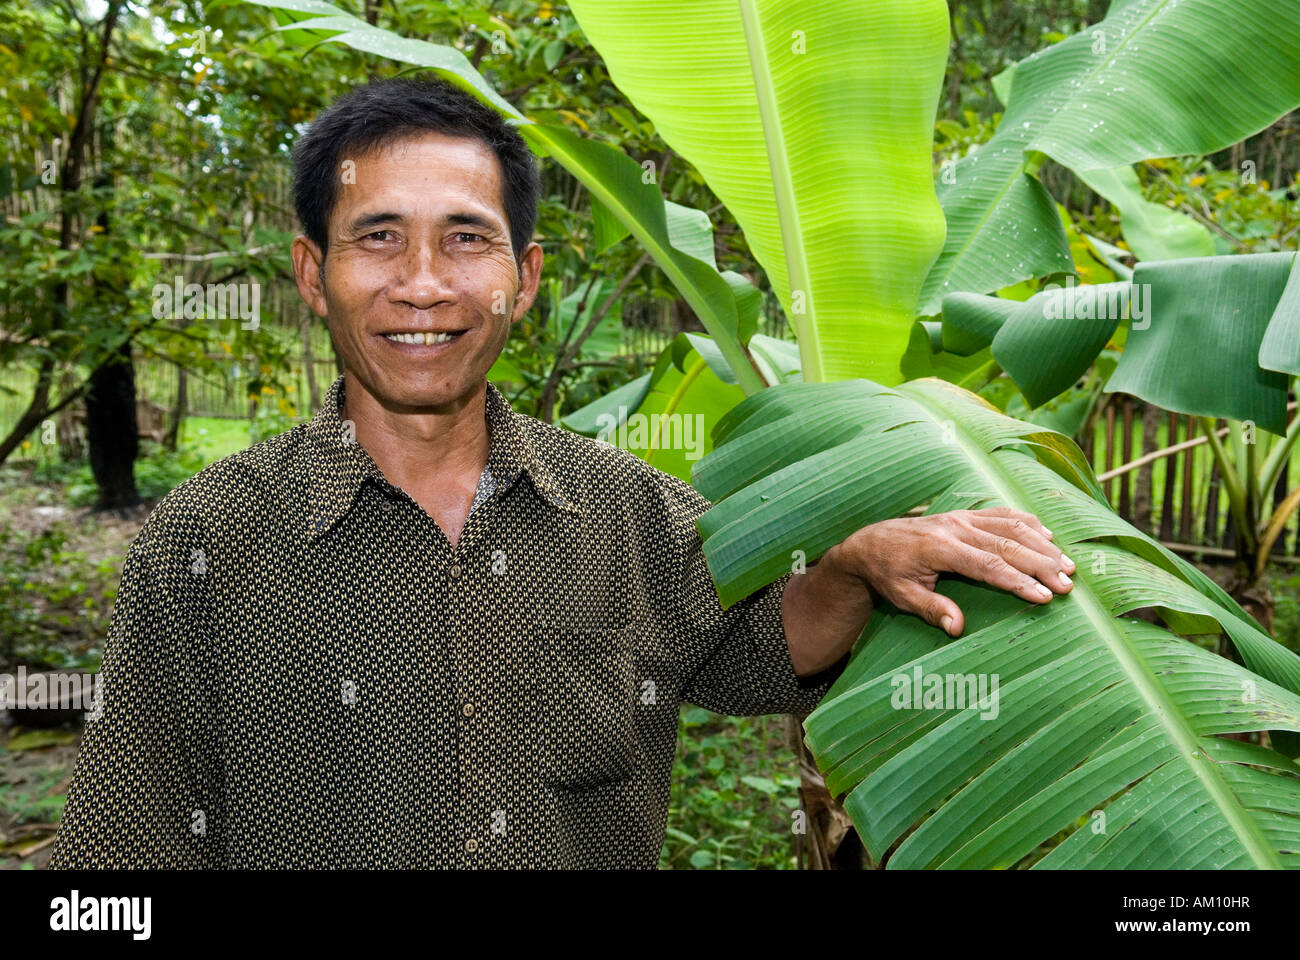 Farmer laughing besides a banana tree, Takeo Province, Cambodia - Stock Image